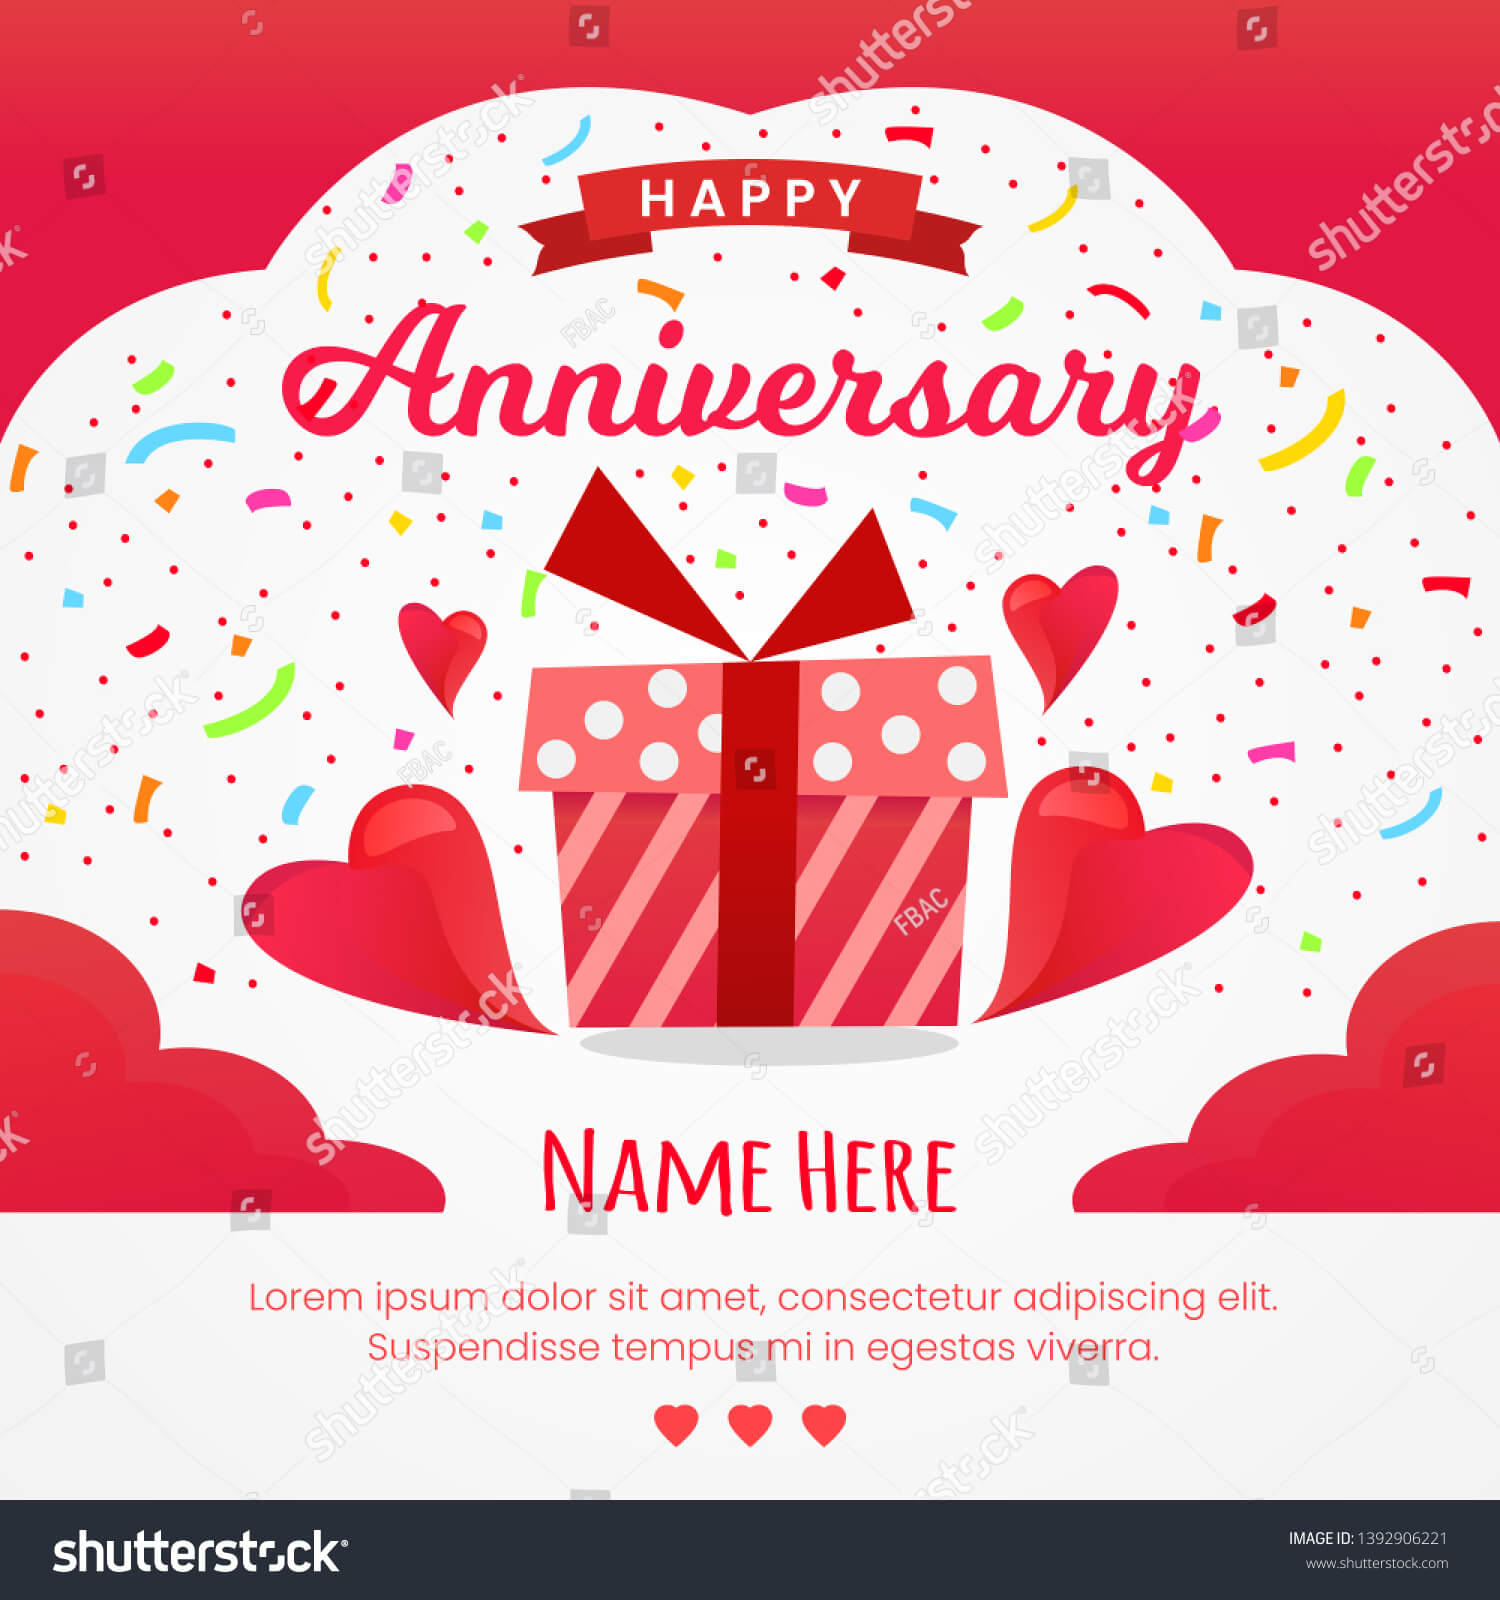 Happy Anniversary Card Design Template Stock Vector (Royalty Pertaining To Template For Anniversary Card